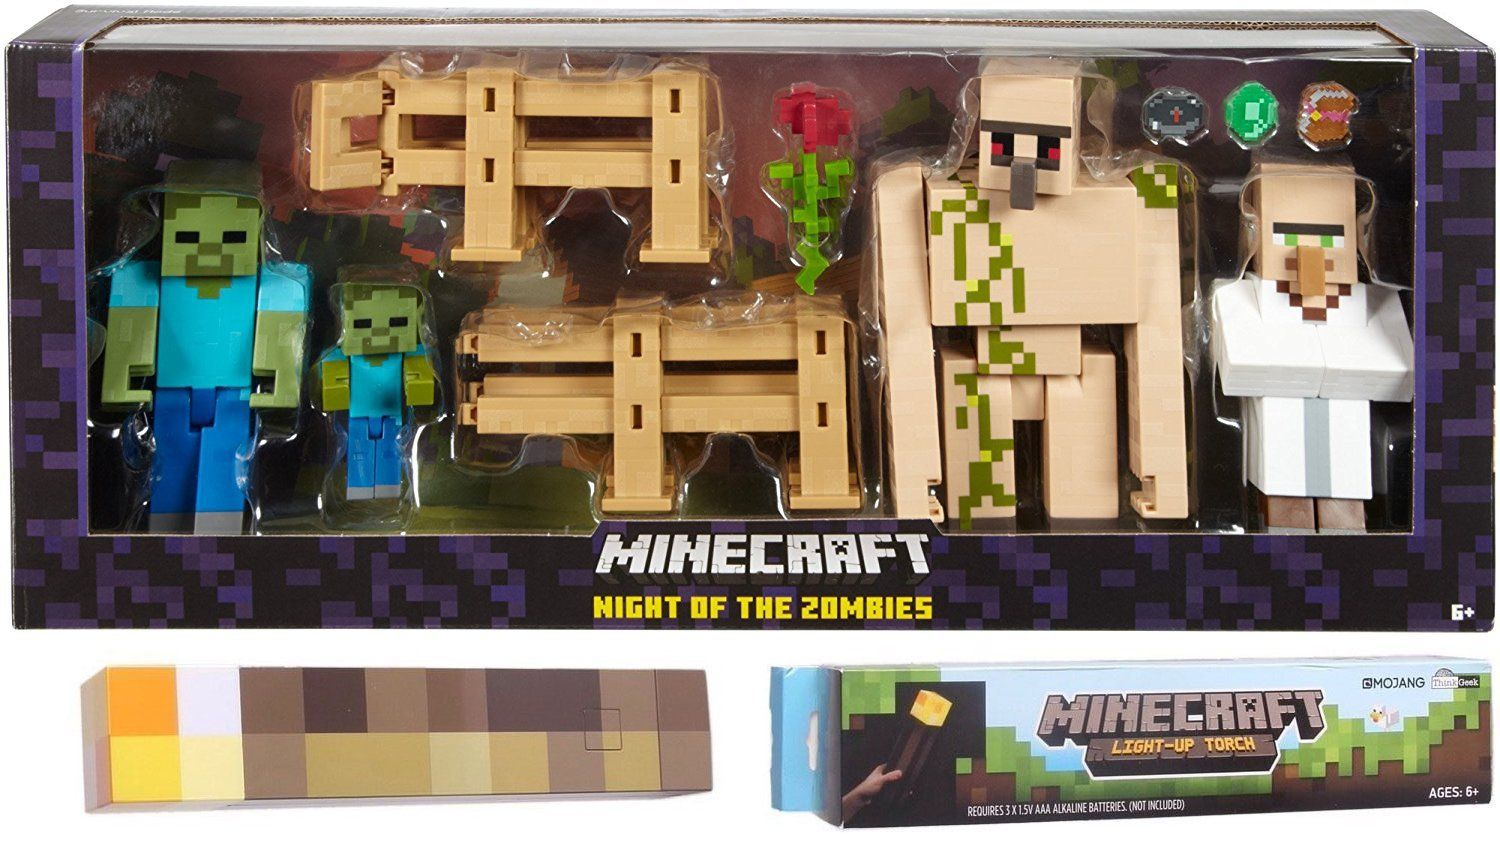 Minecraft action figure survival pack characters night of the